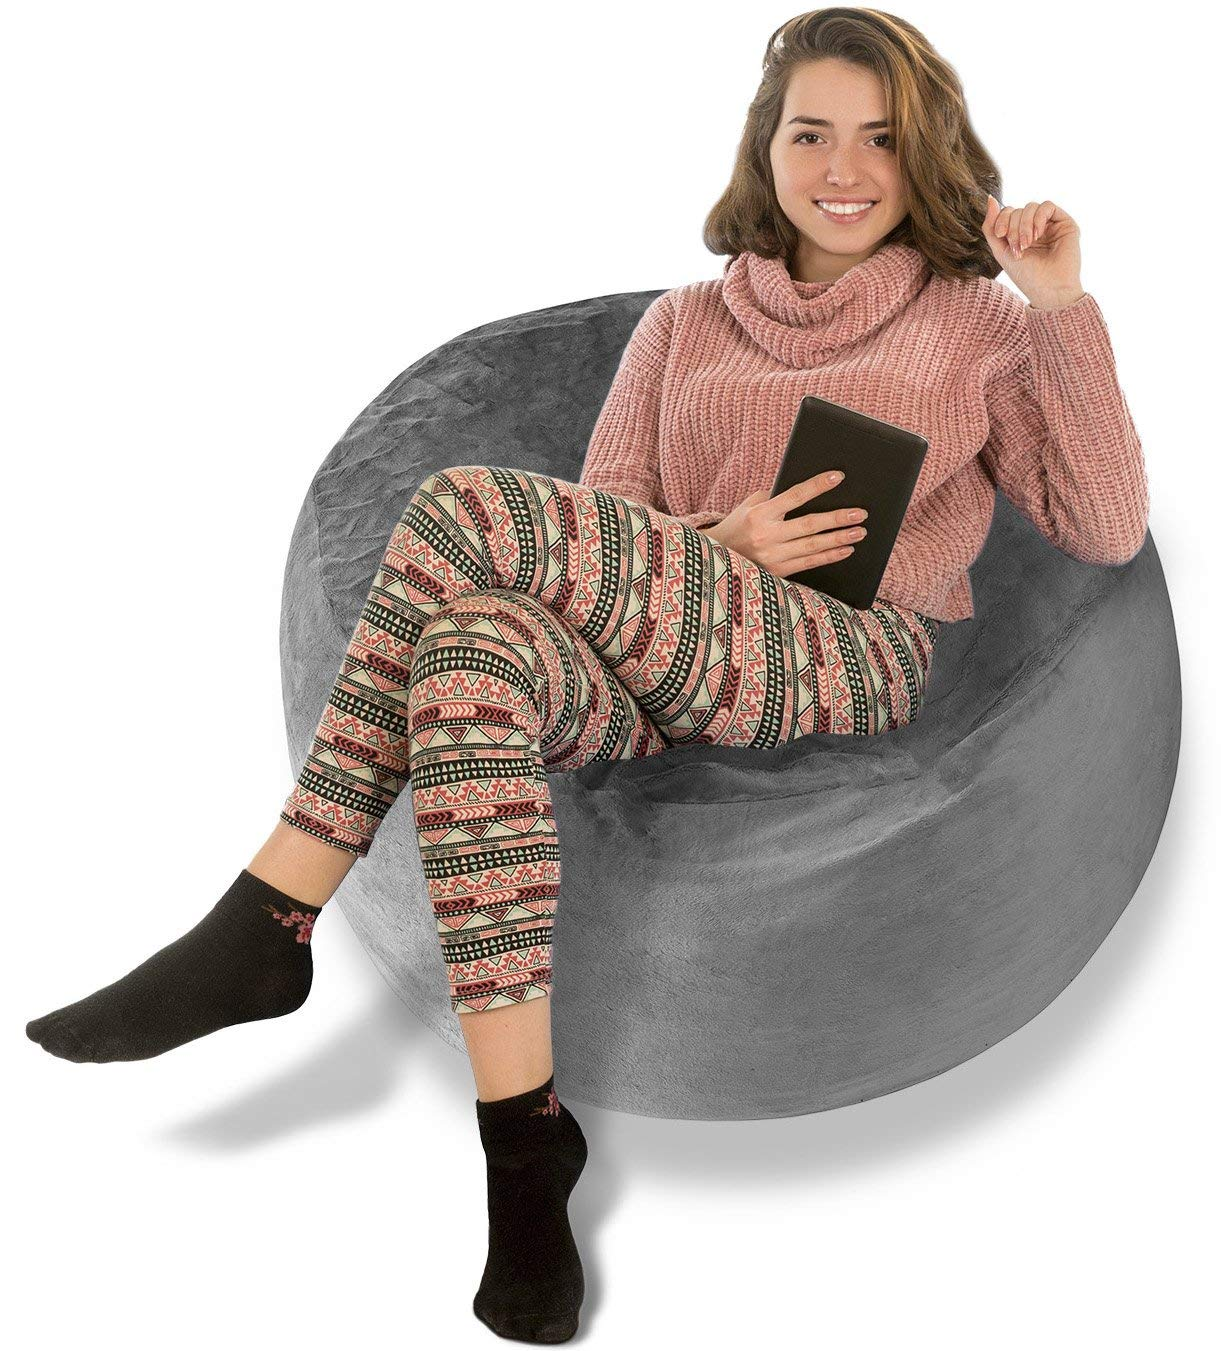 BeanBob Bean Bag Chair (Steel Grey), 3ft - Bedroom Sitting Sack for Kids & Adults w/Super Soft Foam Filling